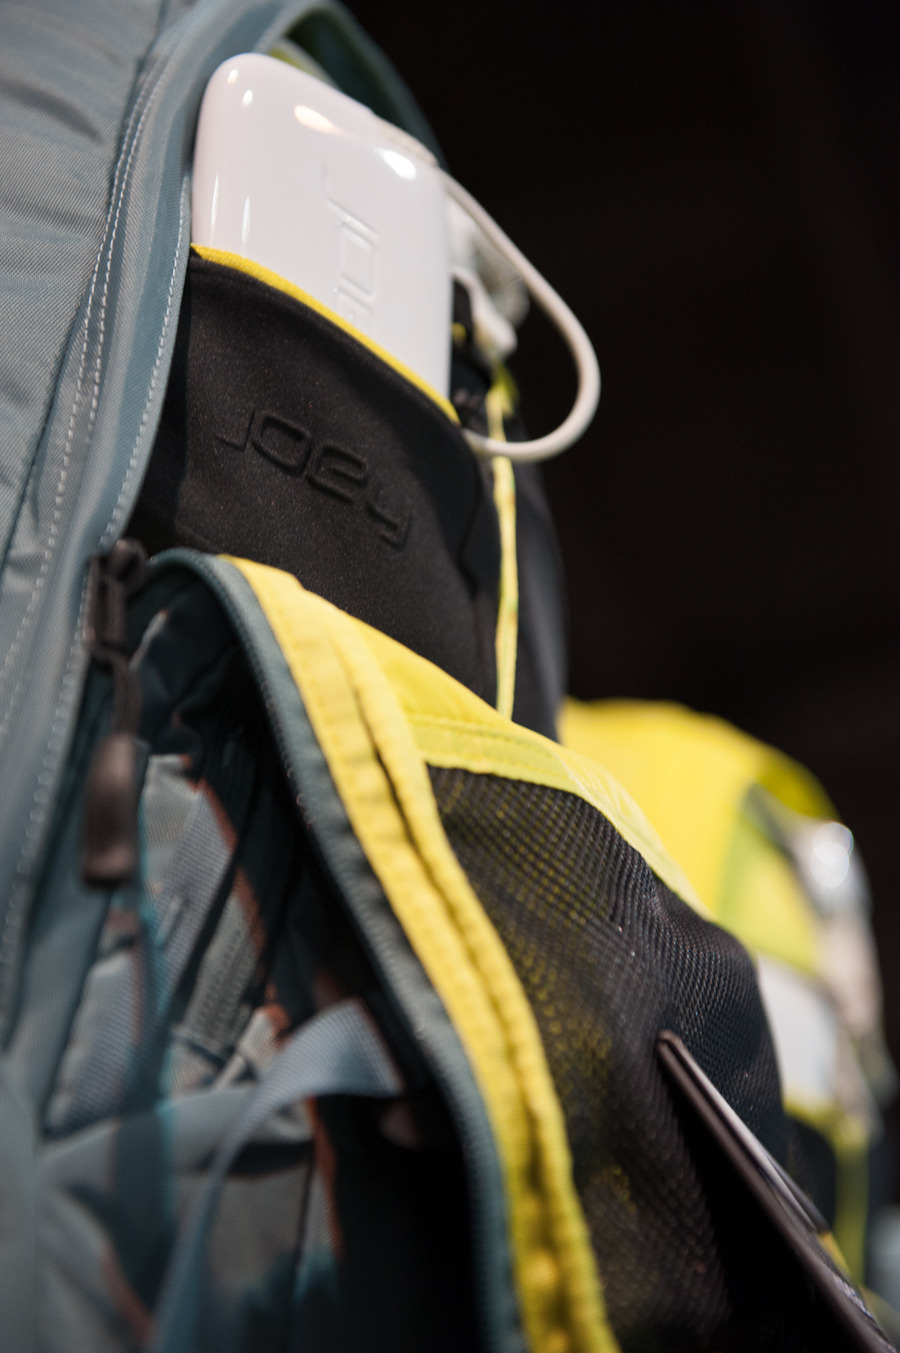 The Router Charged Day Pack from The North Face holds 2.5 charges for your Smartphone. The pack, developed thanks to a partnership with Joey Systems, can charge batteries in addition to your phone.